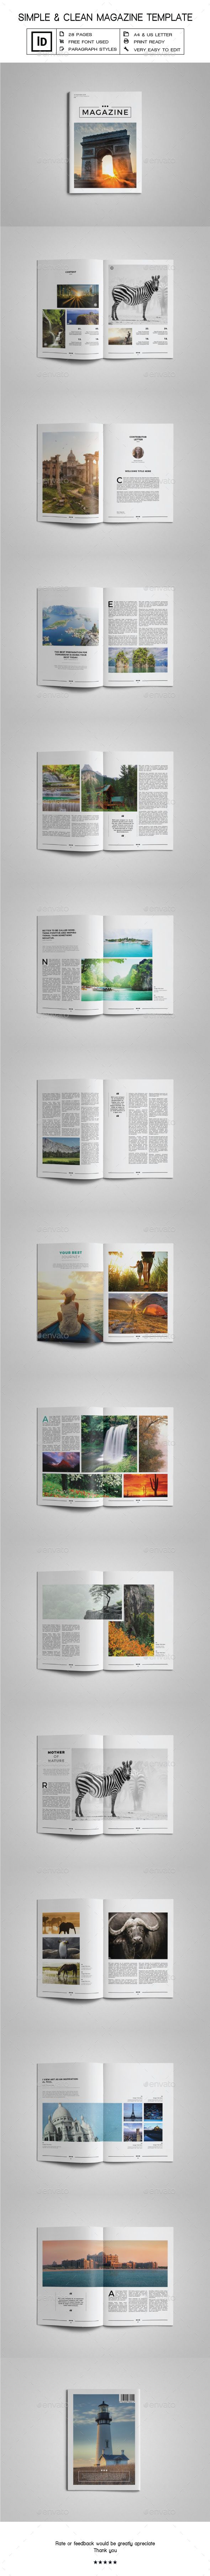 Simple & Clean Magazine Template V | Indesign templates, Template ...